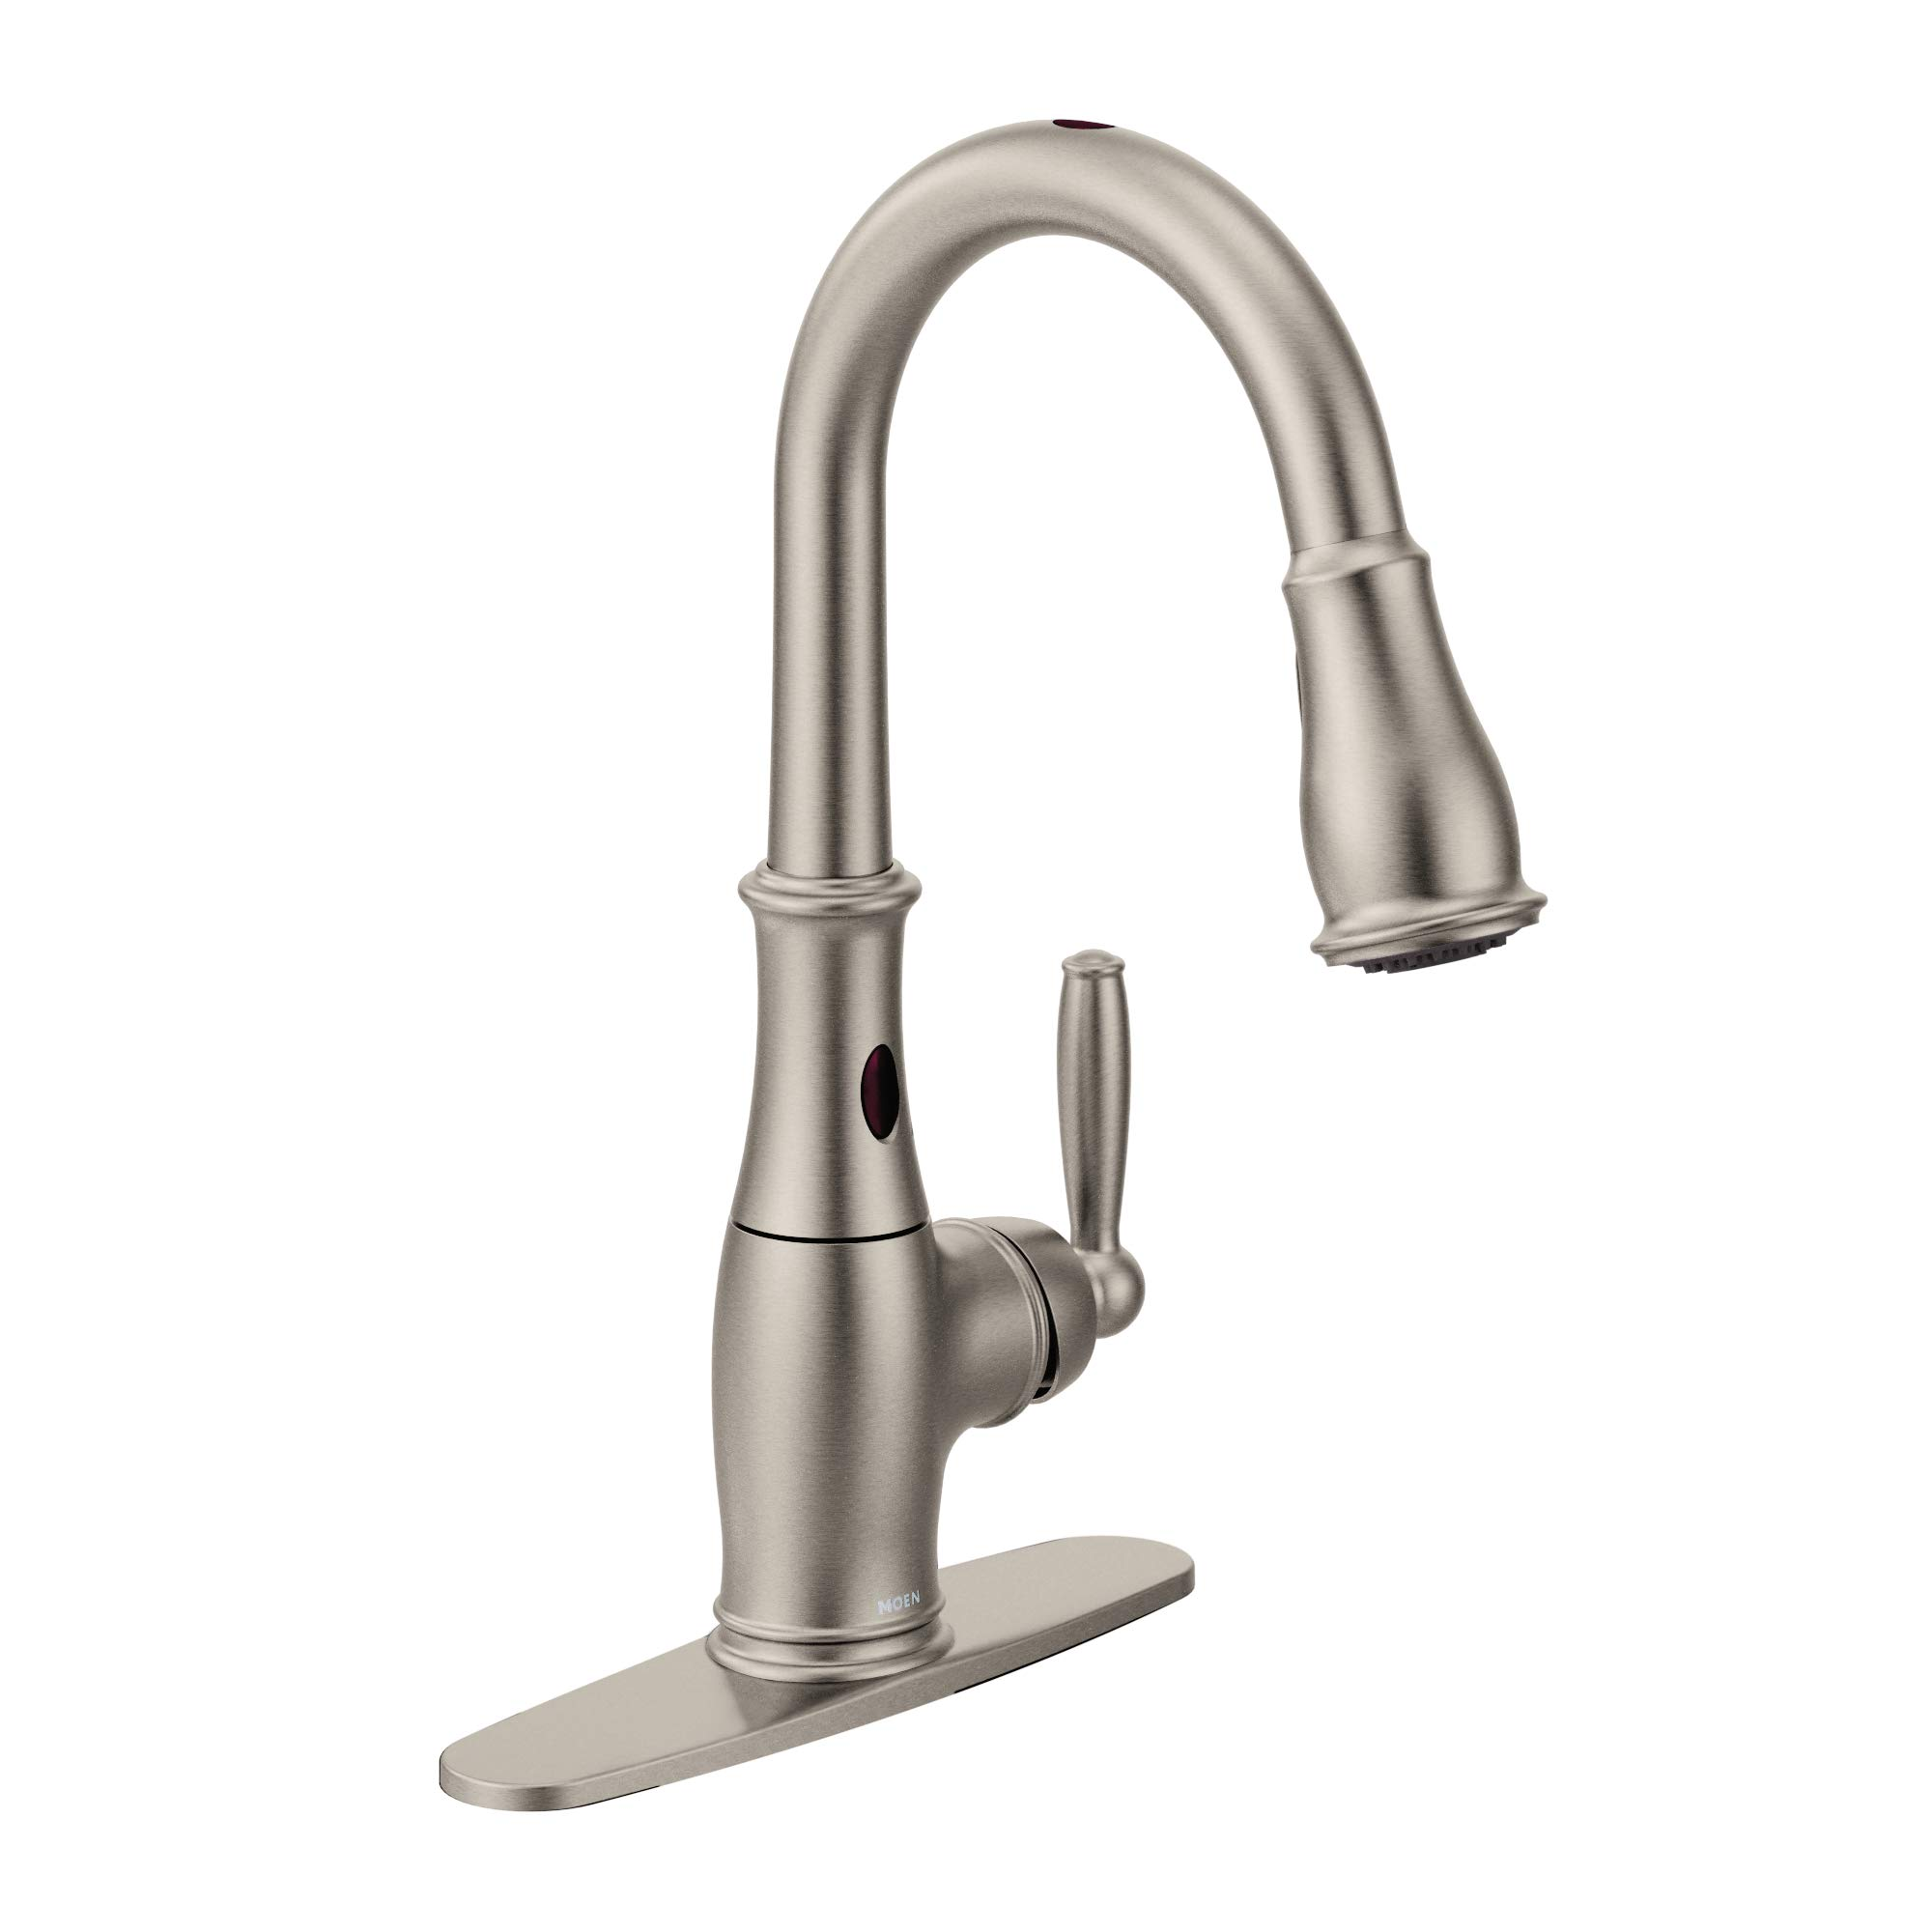 Moen 7185ESRS Brantford Motionsense Two-Sensor Touchless One-Handle High Arc Pulldown Kitchen Faucet Featuring Reflex, Spot Resist Stainless by Moen (Image #7)